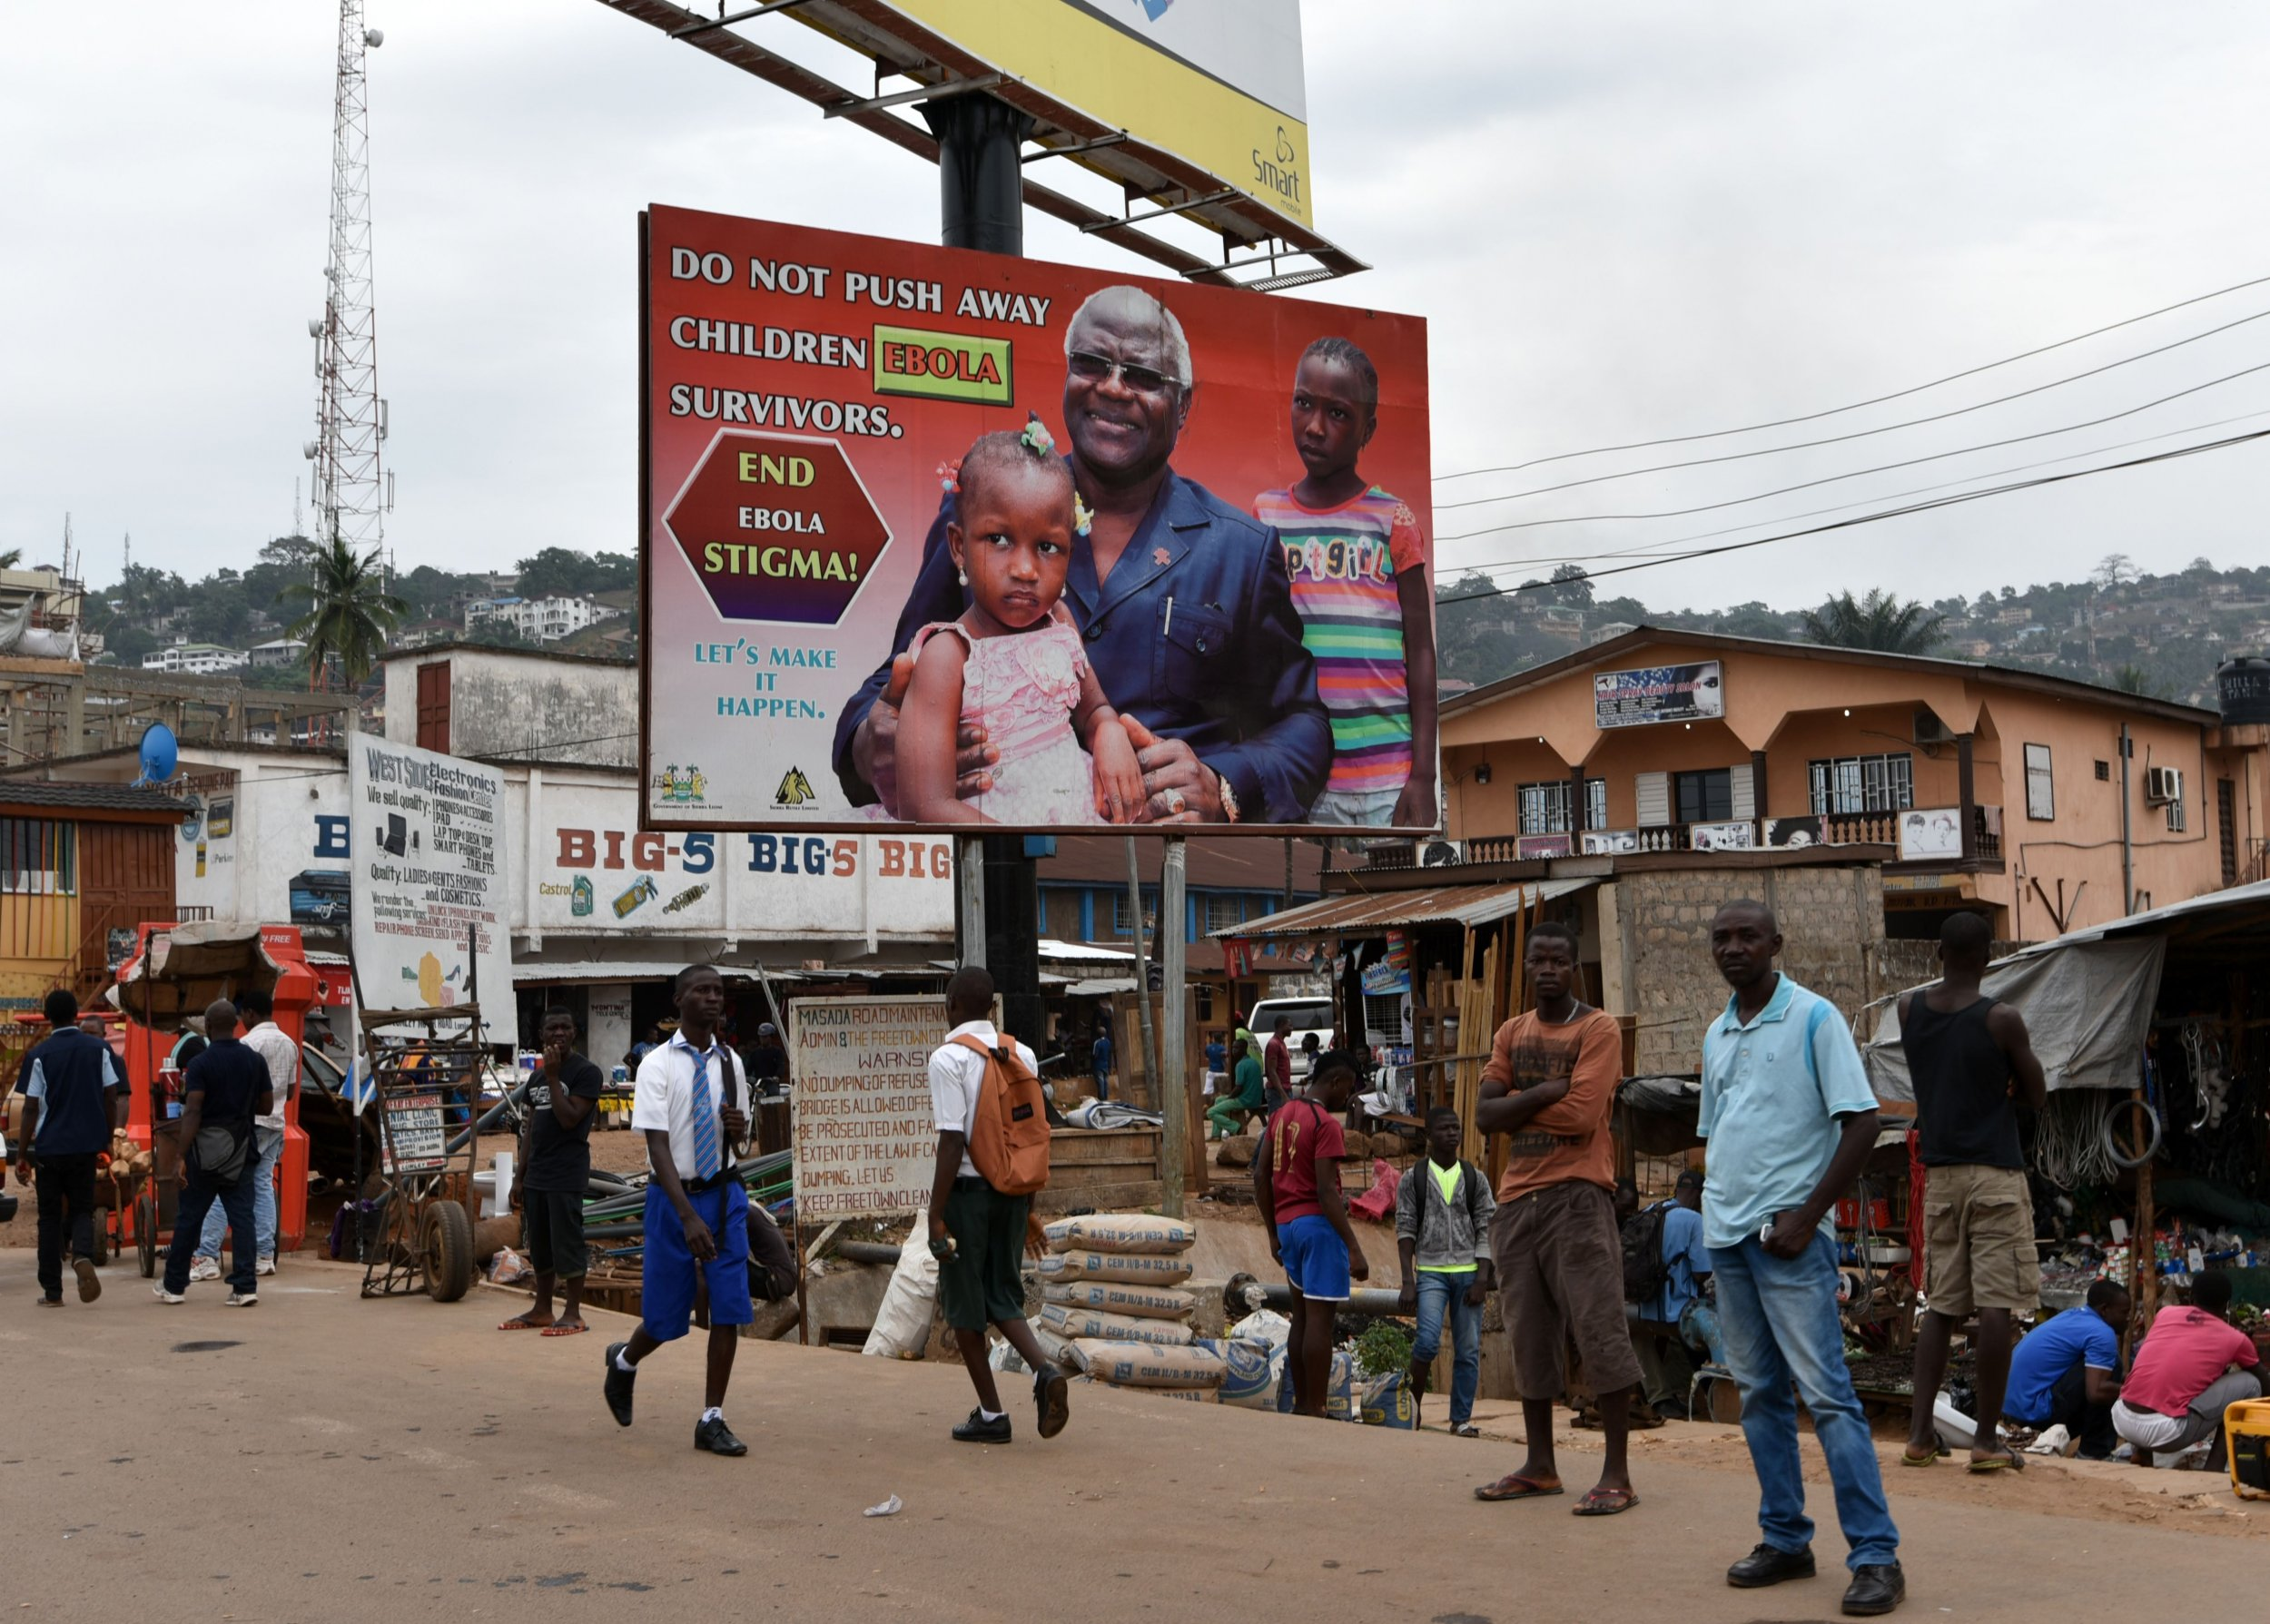 An Ebola poster in Sierra Leone featuring the president, Ernest Bai Koroma, is displayed.